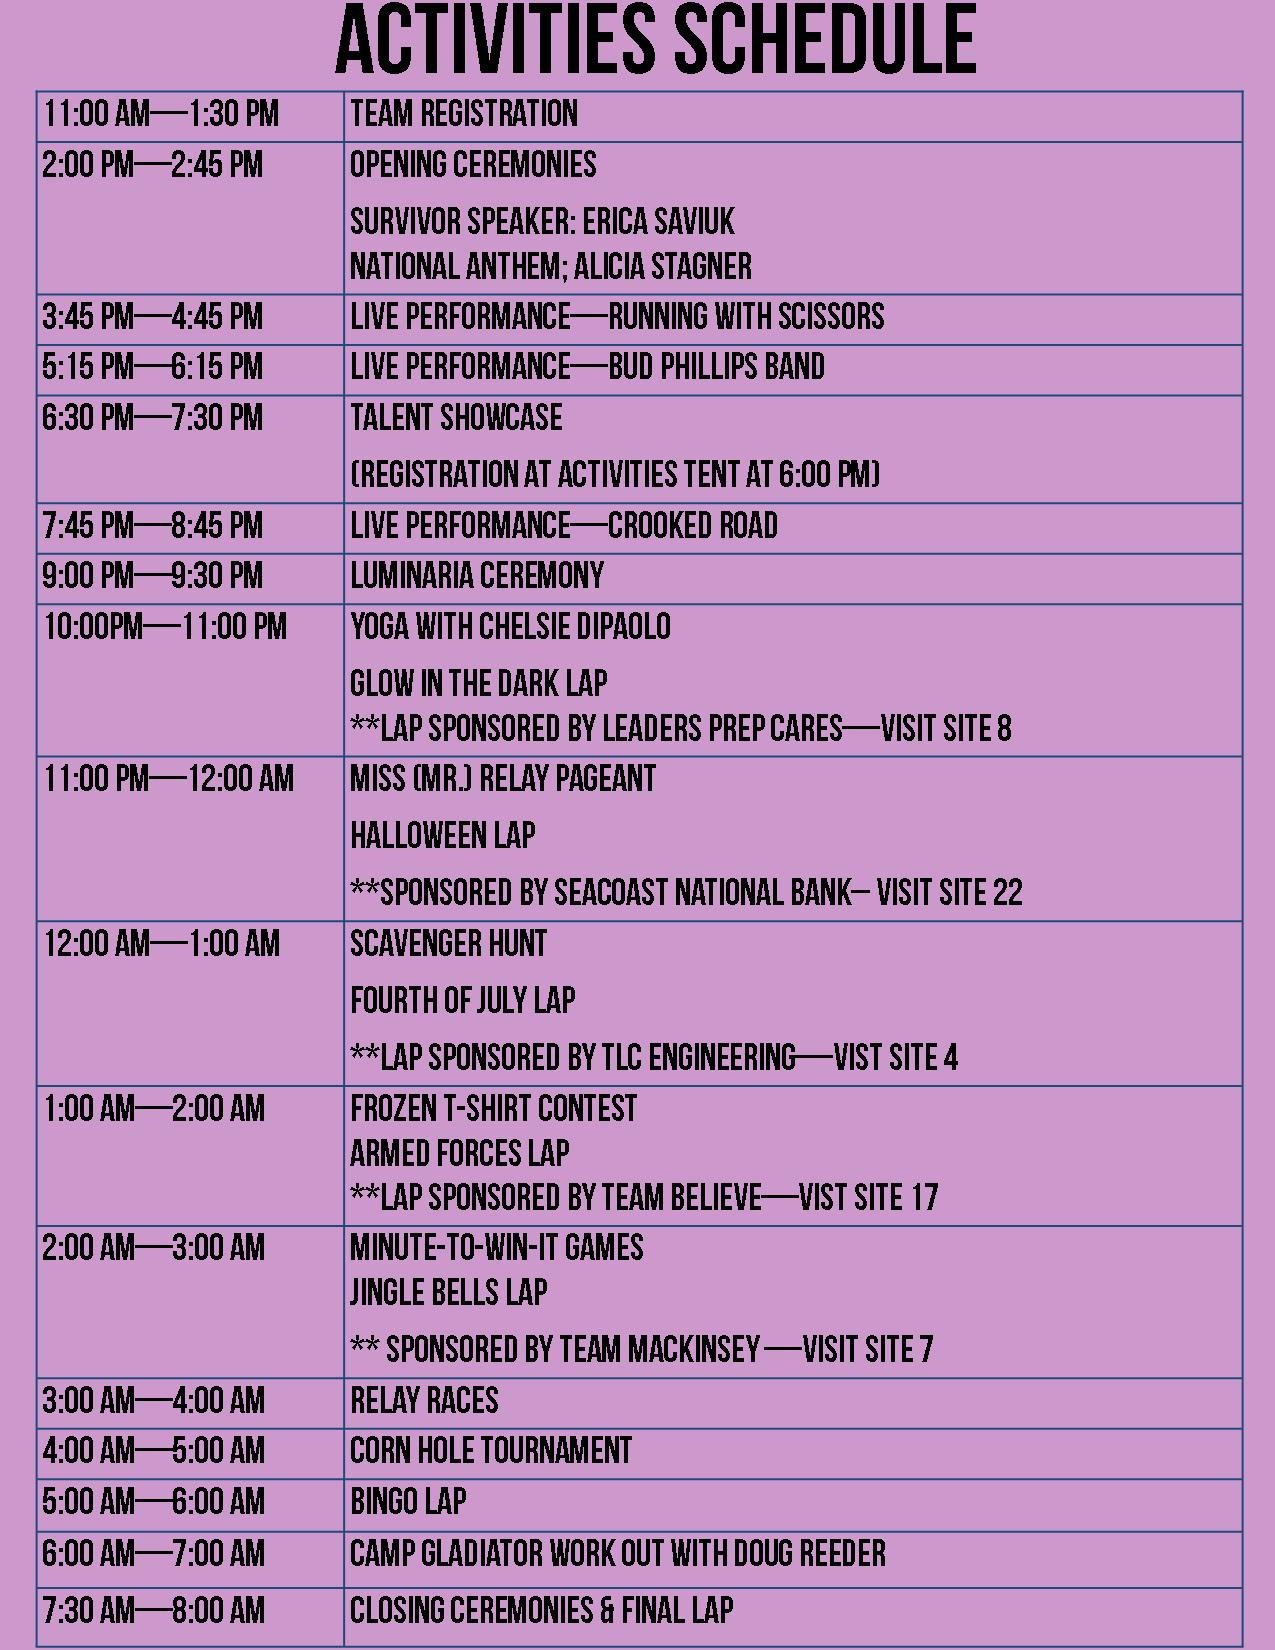 Downtown Activity Schedule